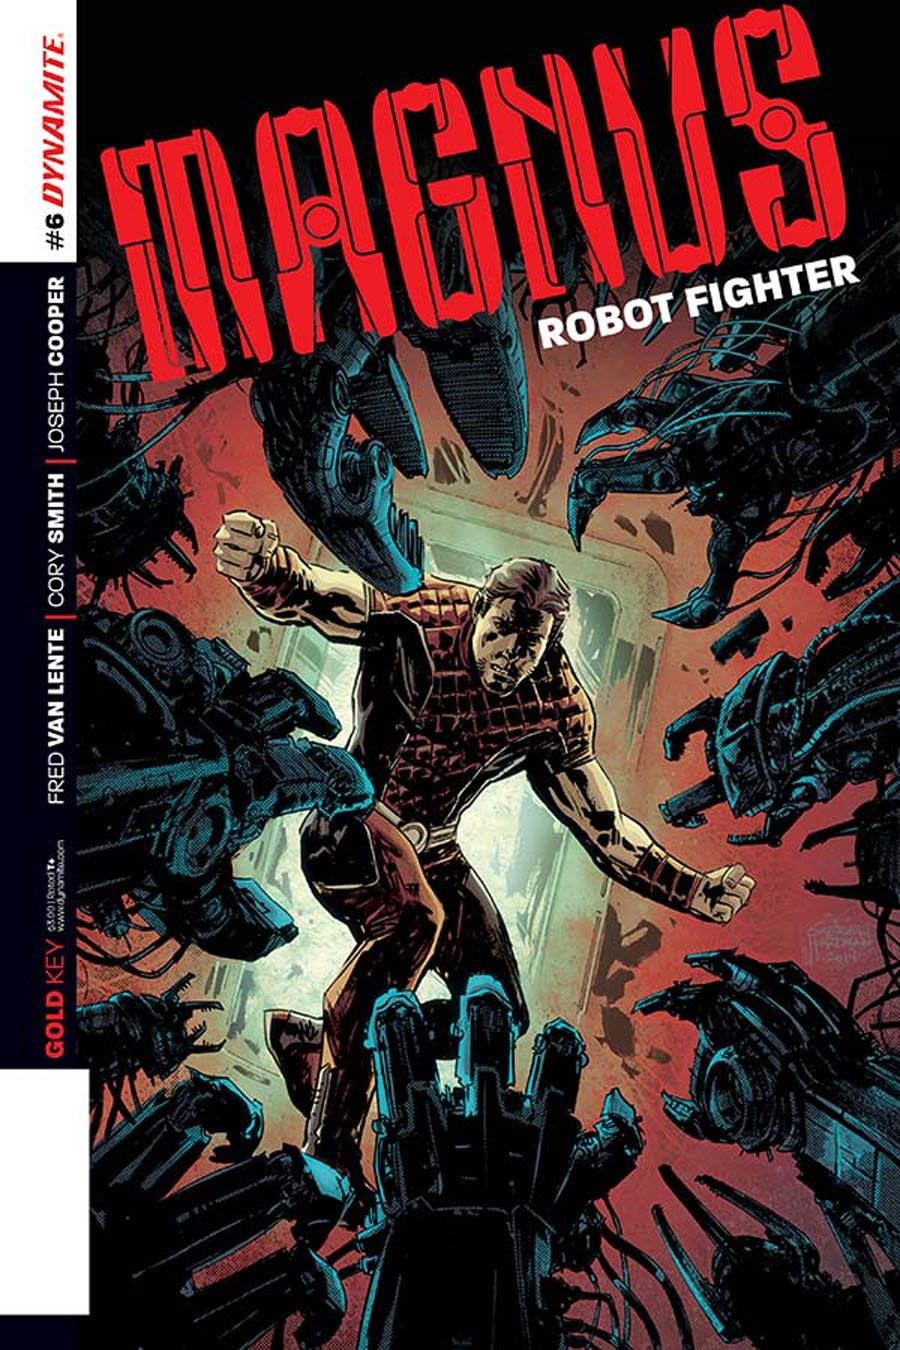 Magnus Robot Fighter Vol 4 #6 Cover A Regular Gabriel Hardman Cover